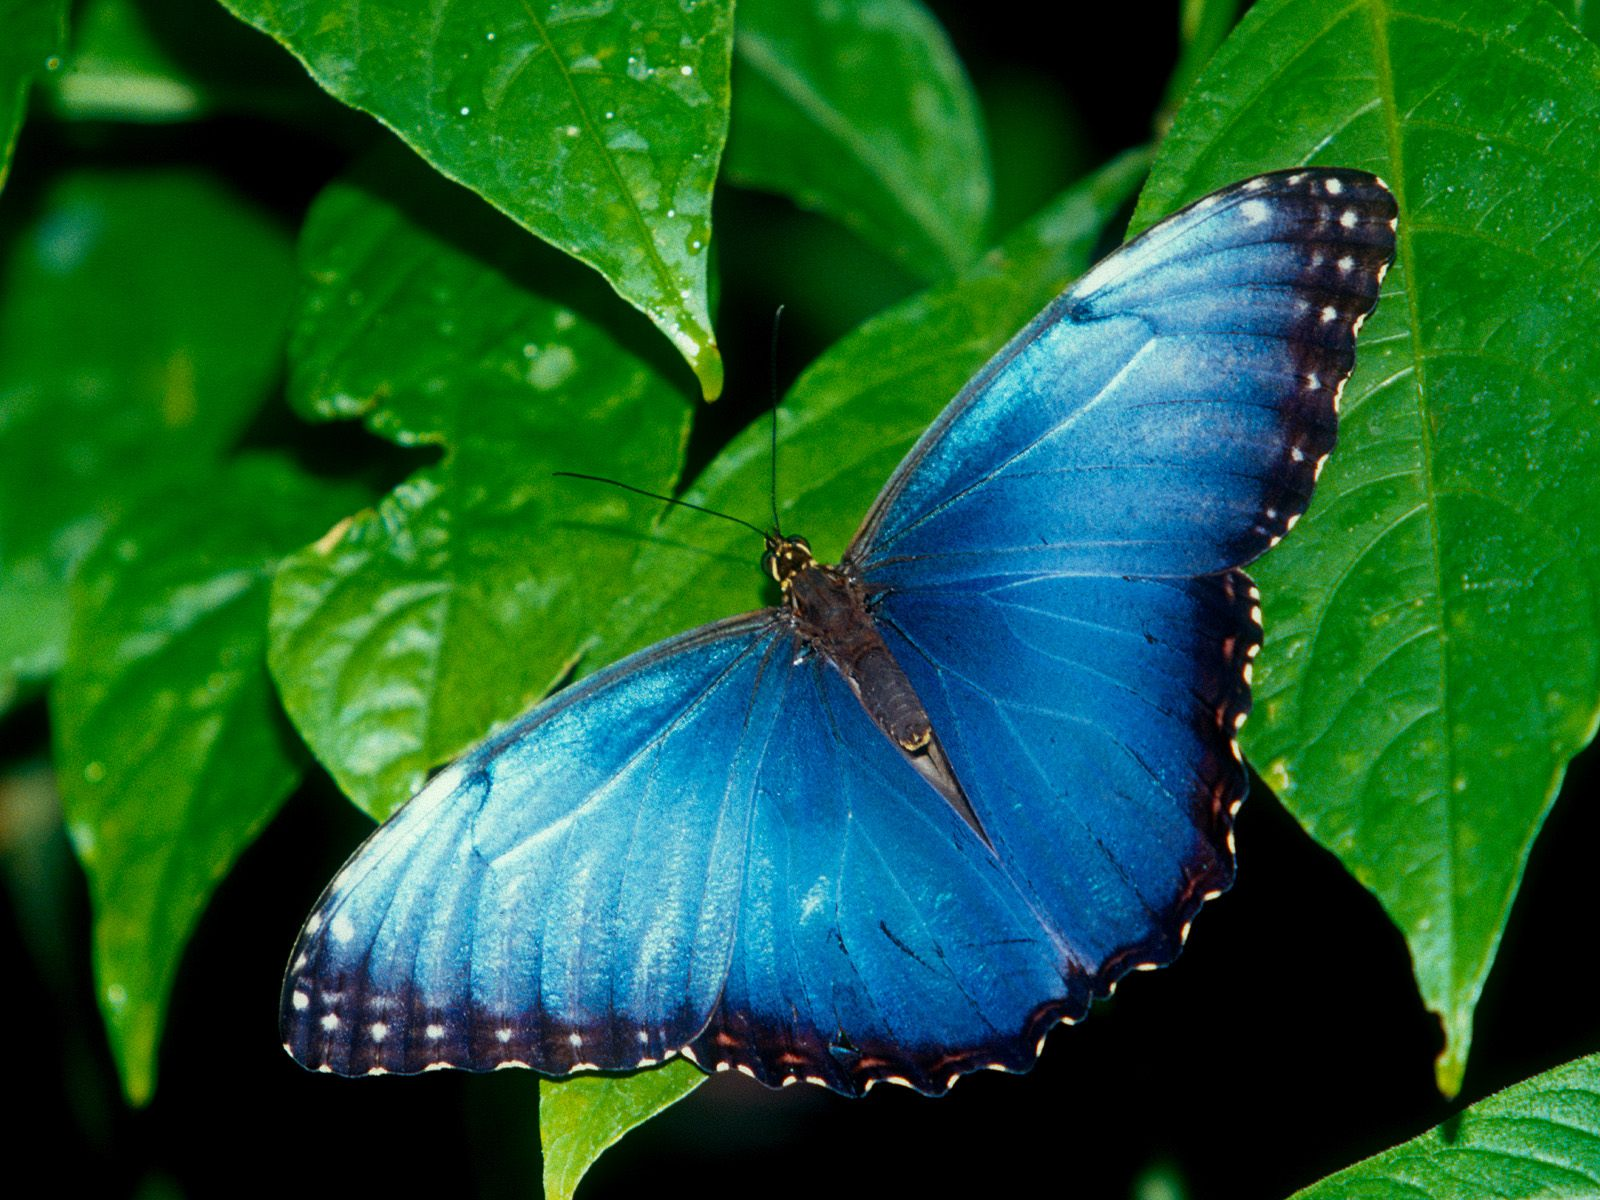 click to free download the wallpaper--Images of Butterfly - Blue Morpho Post in Pixel of 1600x1200, Blue Butterfly on Green Plants, Waterdrop Also on, Fresh Scene 1600X1200 free wallpaper download